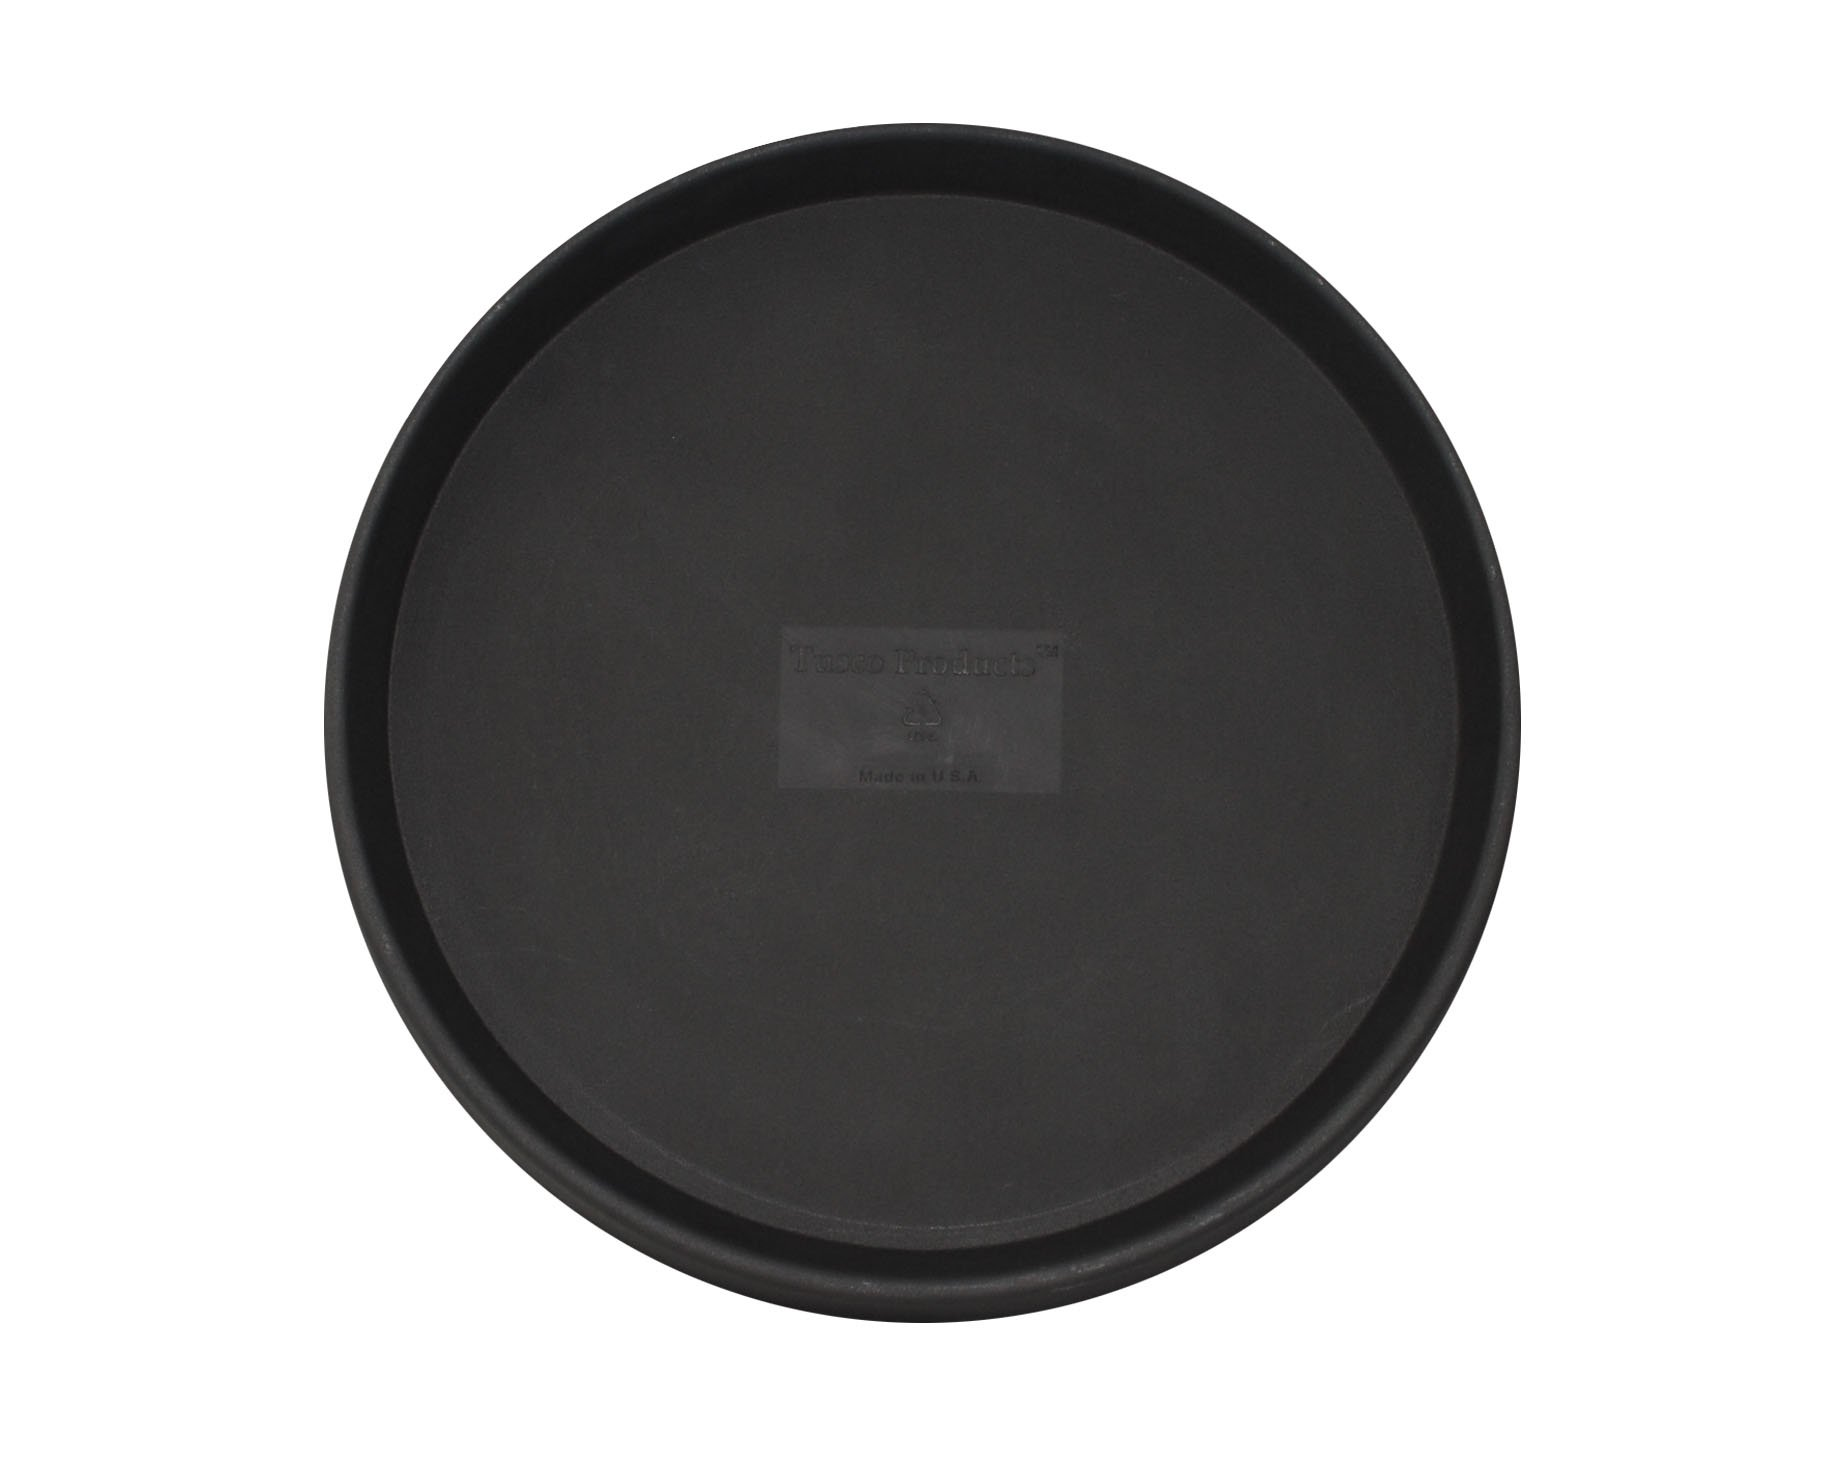 Tusco Products TR30BK Round Saucer, 30-Inch Diameter, Black by Tusco Products